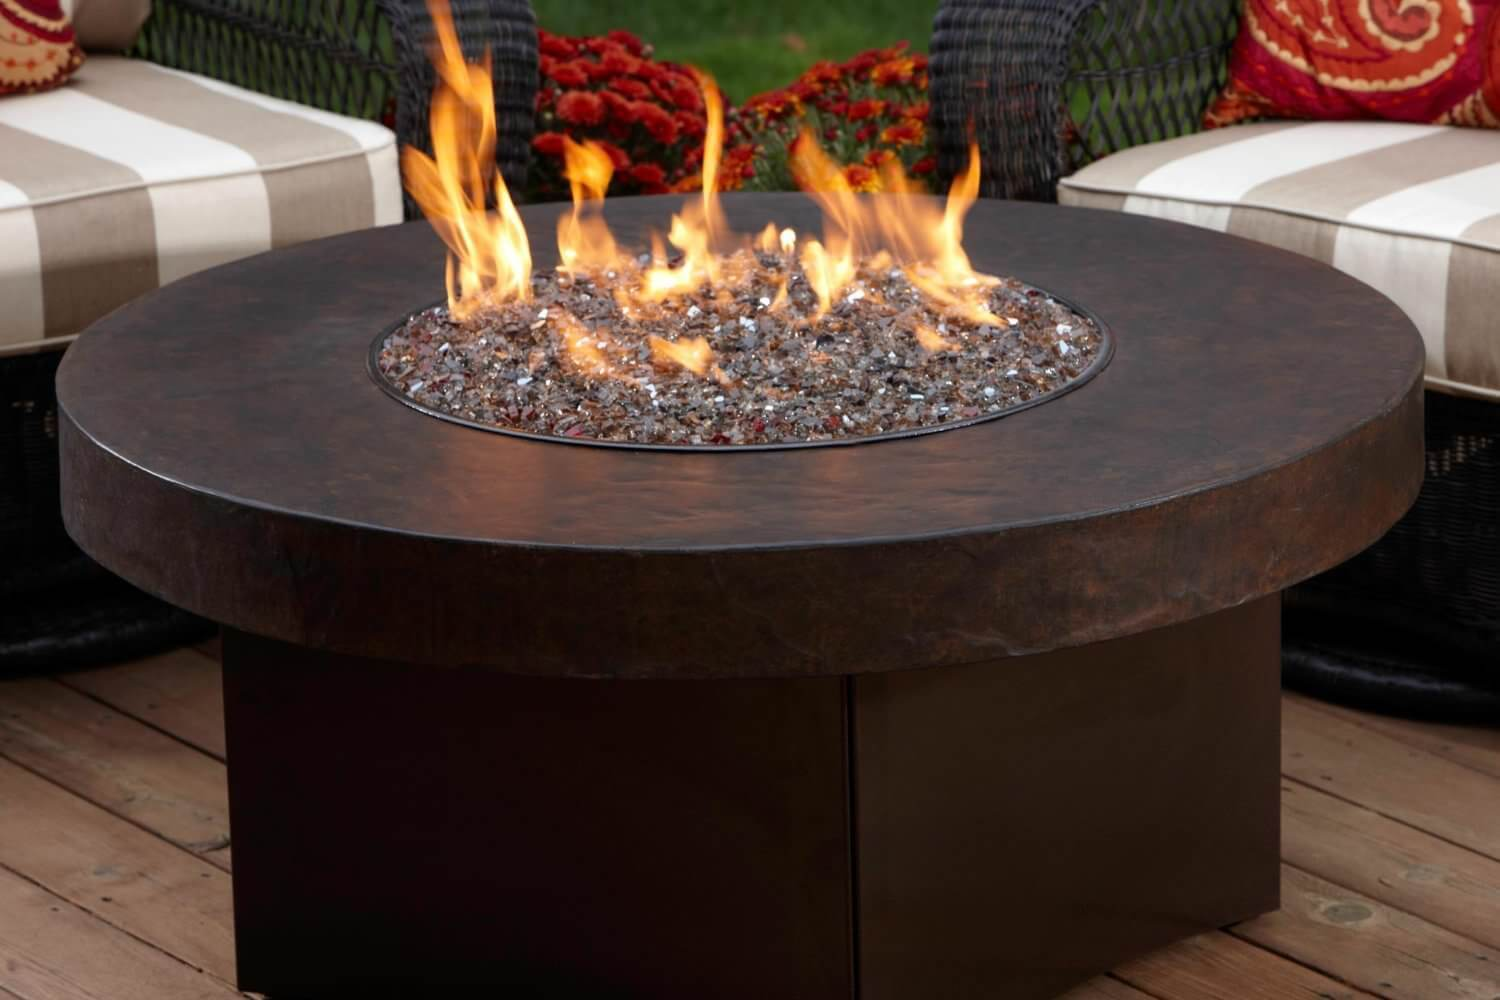 Large round brown metal gas powered movable fire pit with a square base and round top perfect for a patio or backyard area.